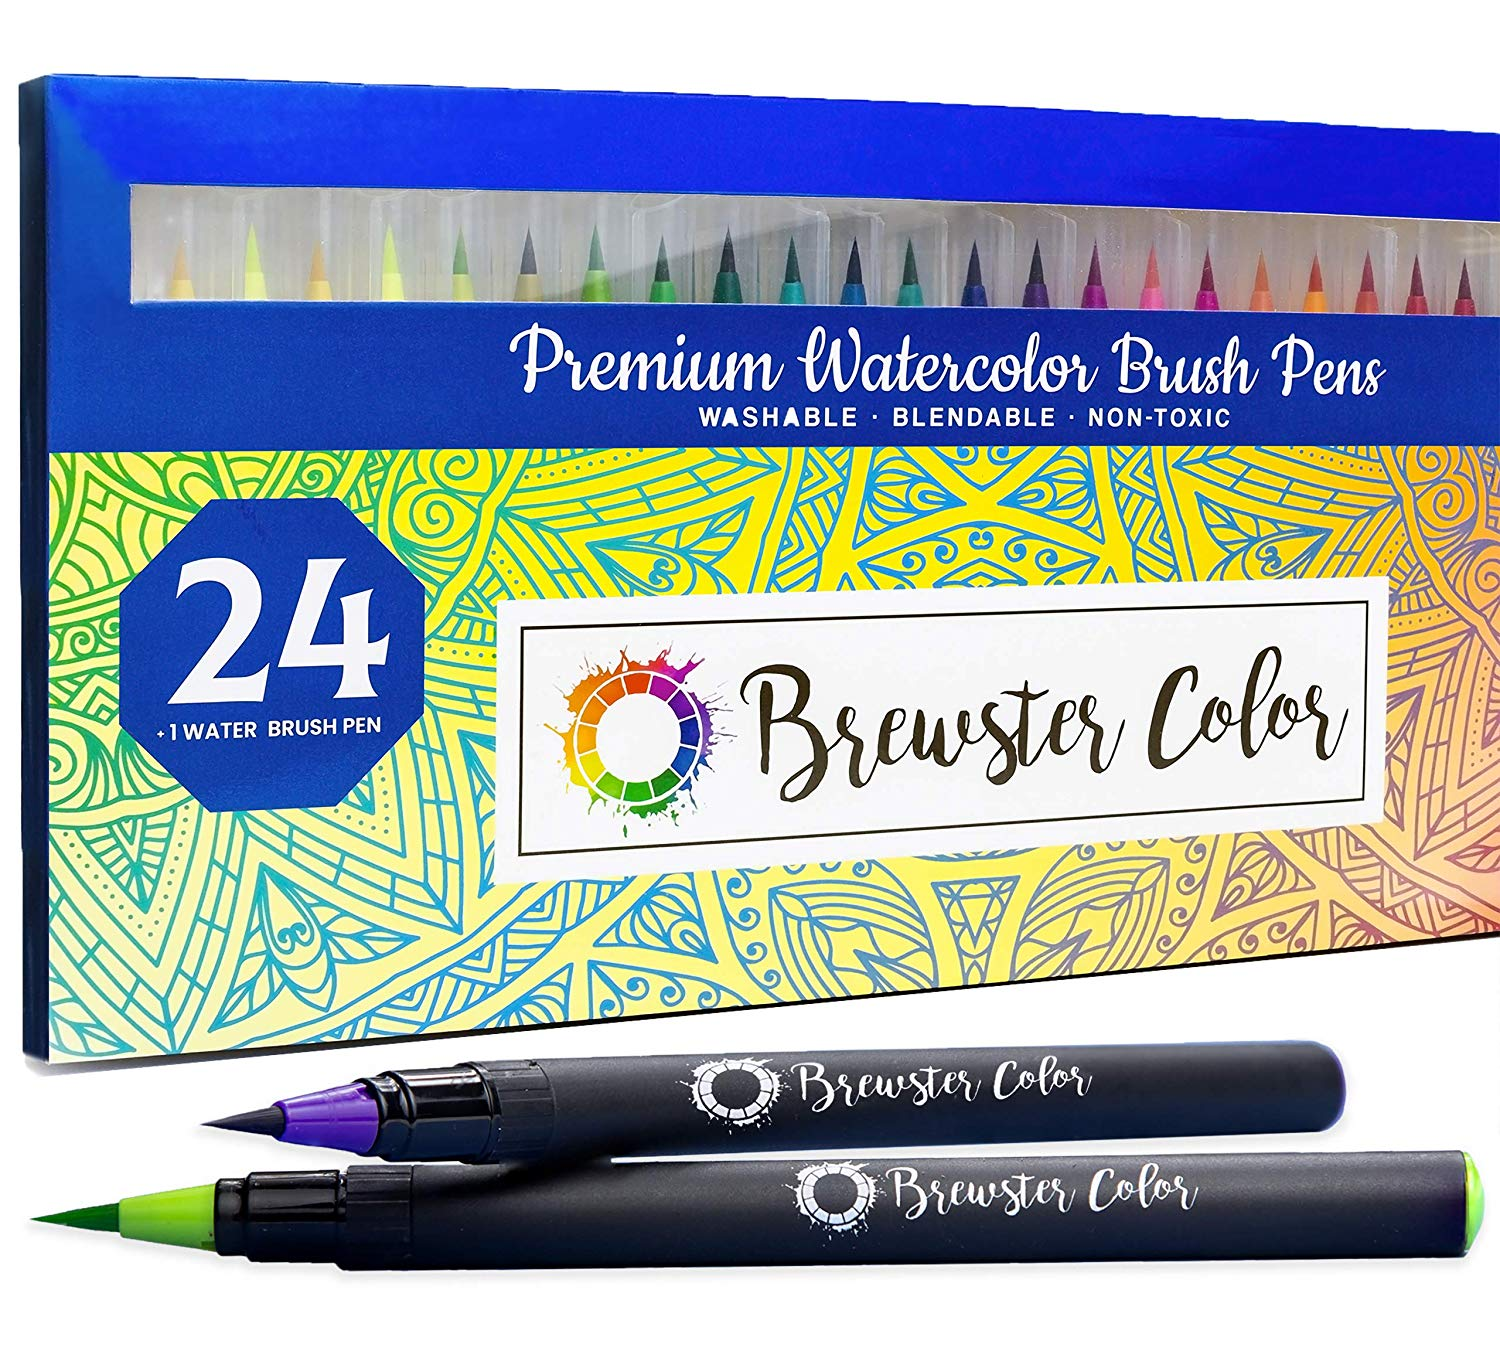 Watercolor Brush Pens by Brewster Color